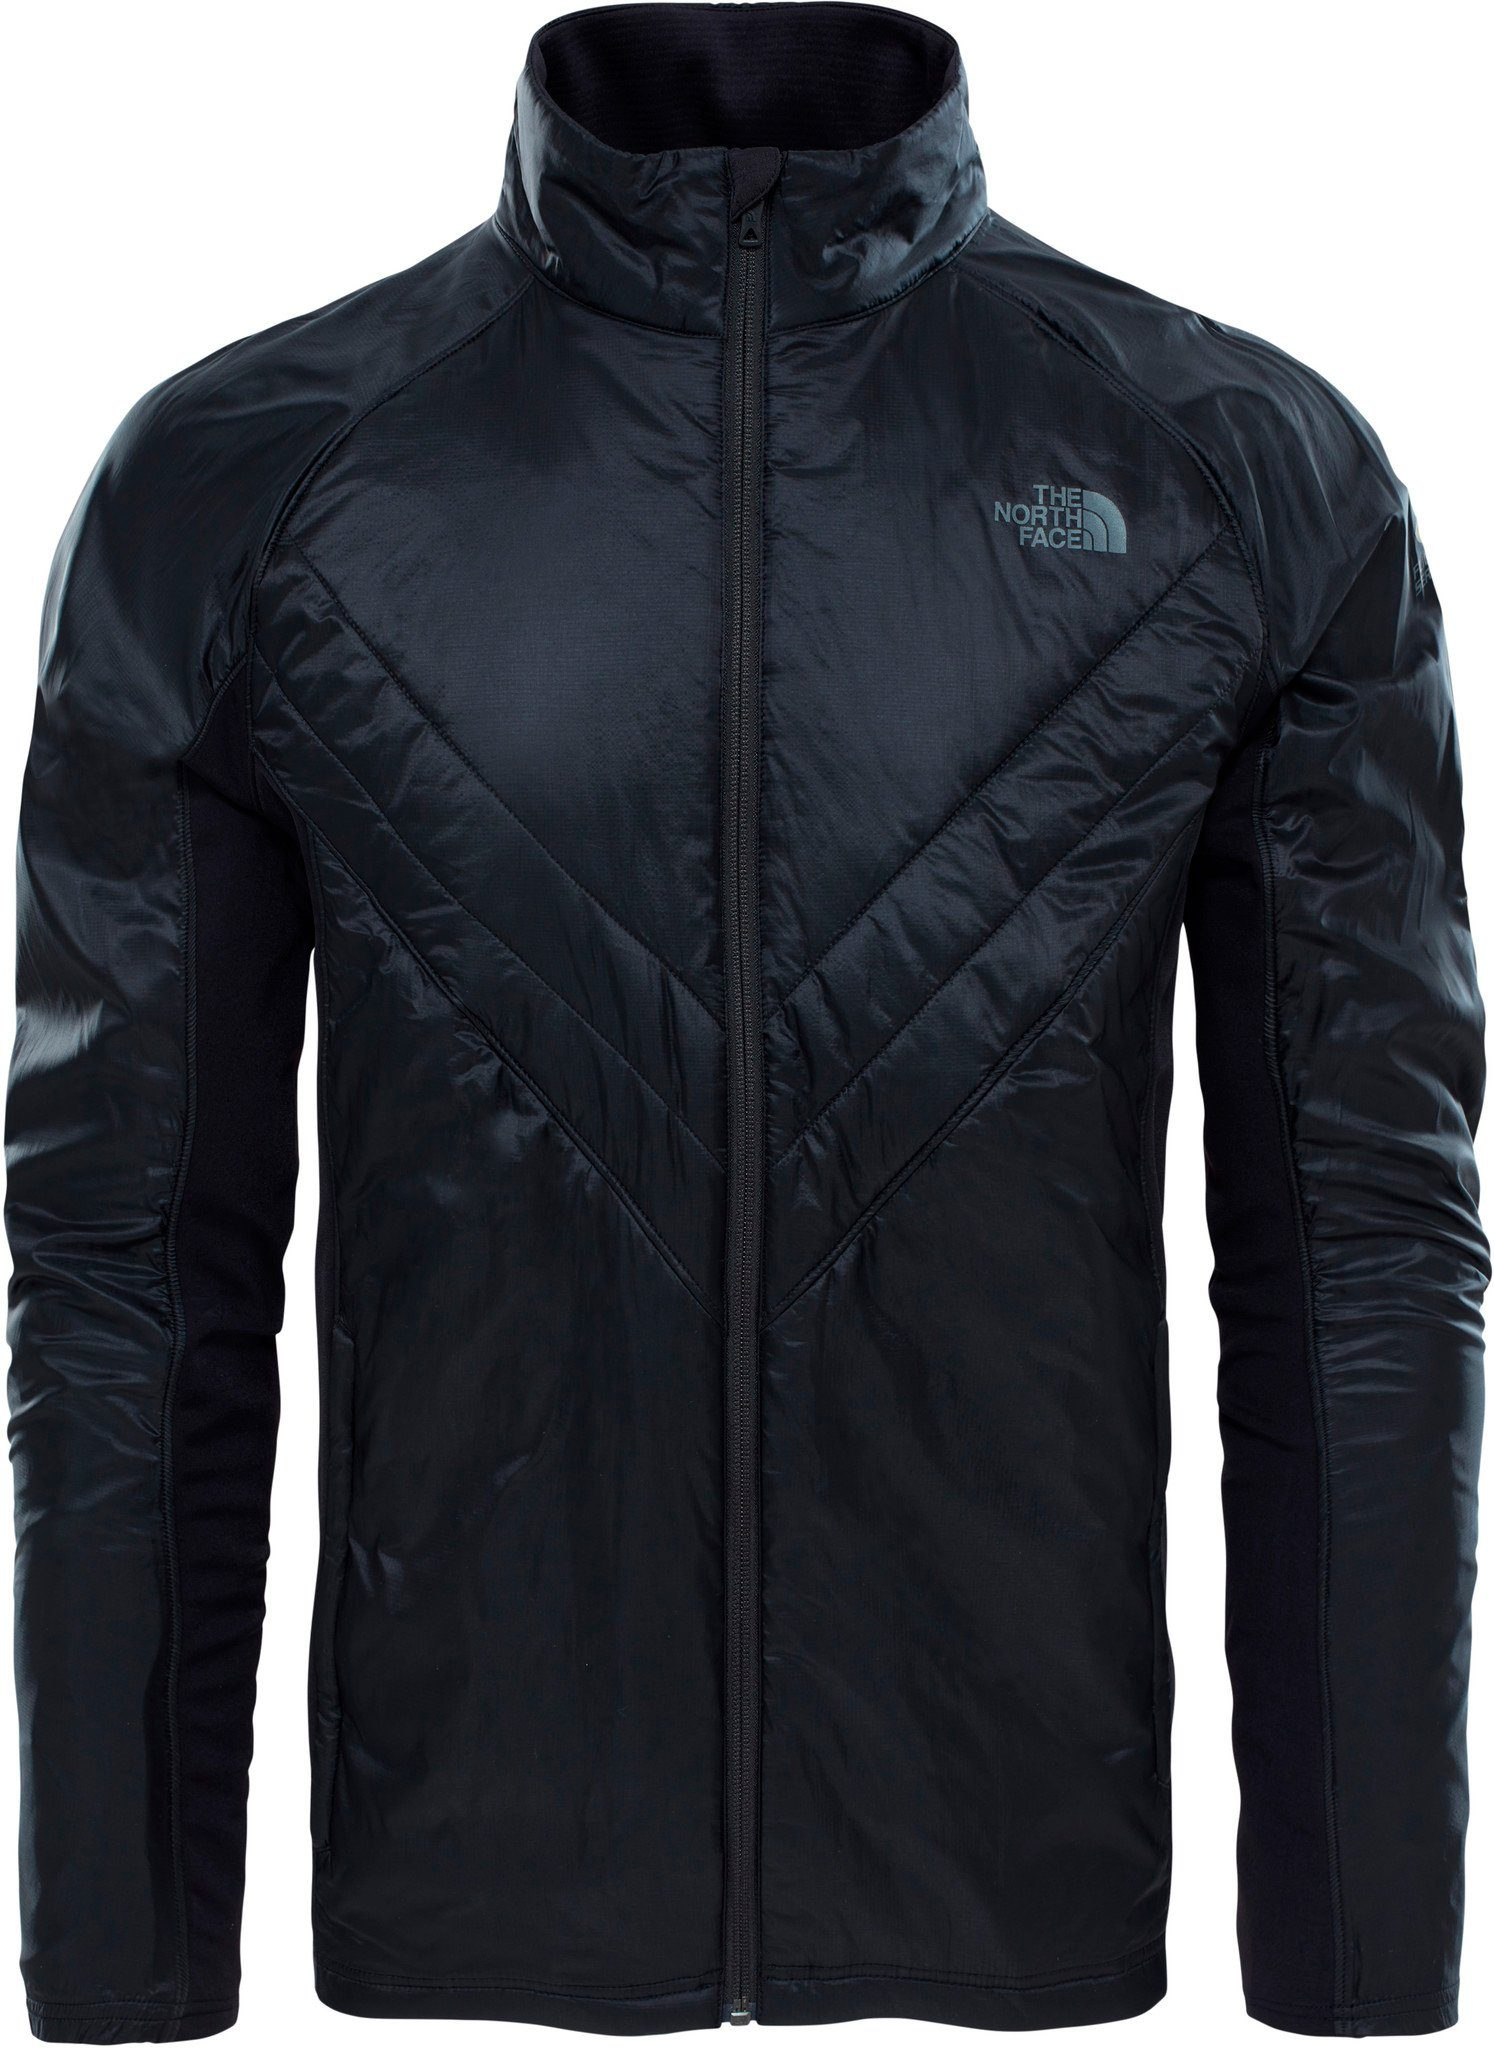 The North Face Trainingsjacke »Flight Touji Run Jacket Men«